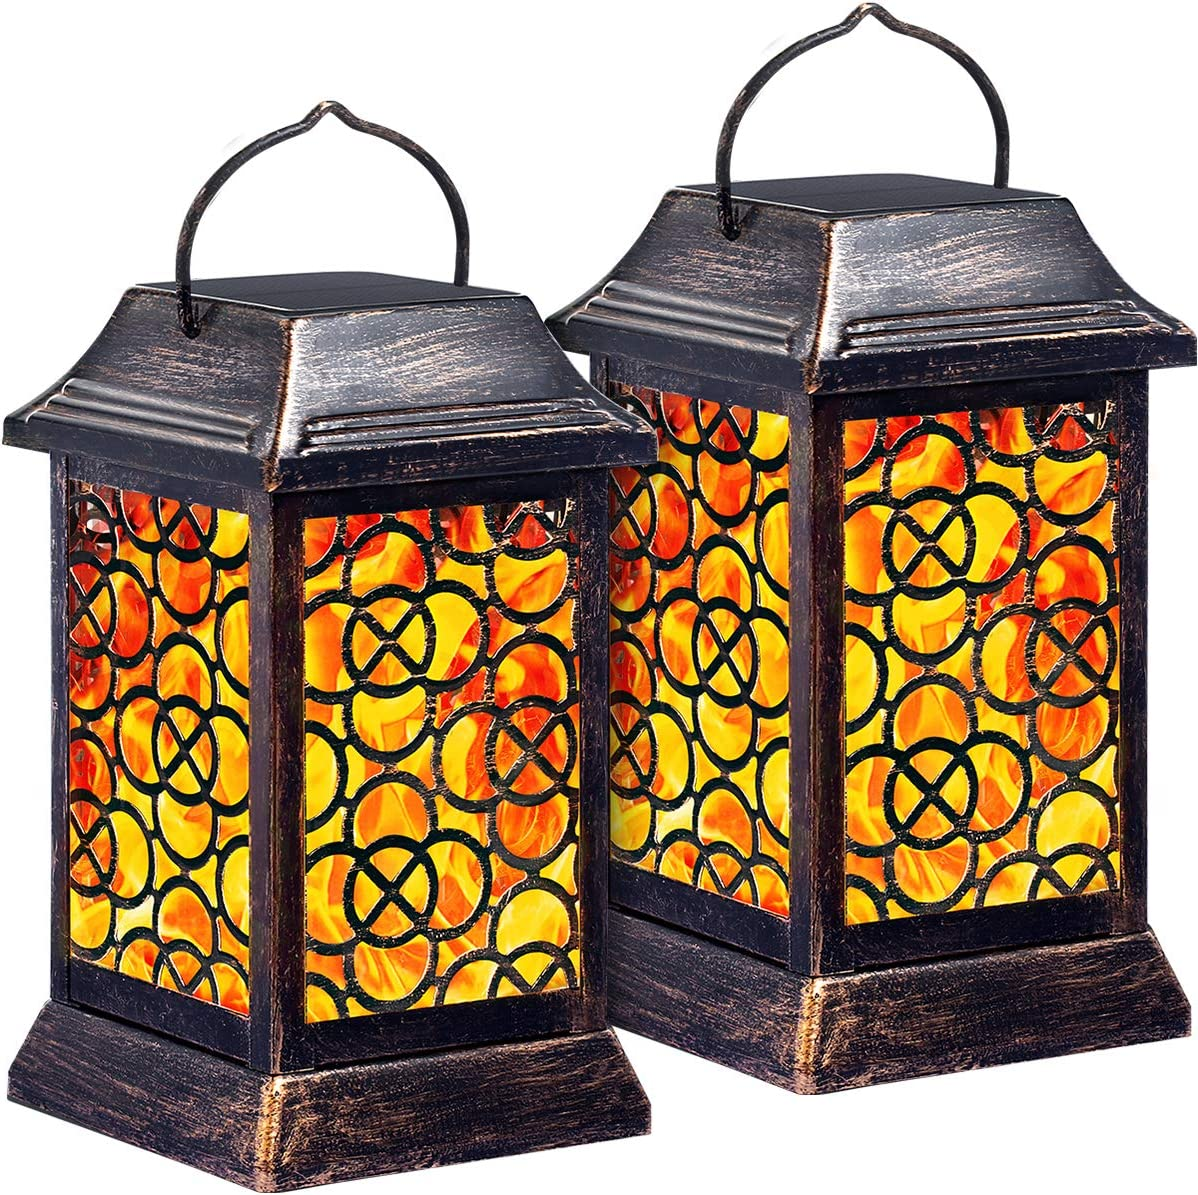 {2 Pack} Outdoor Solar Hanging Lantern Lights Metal LED Decorative Light